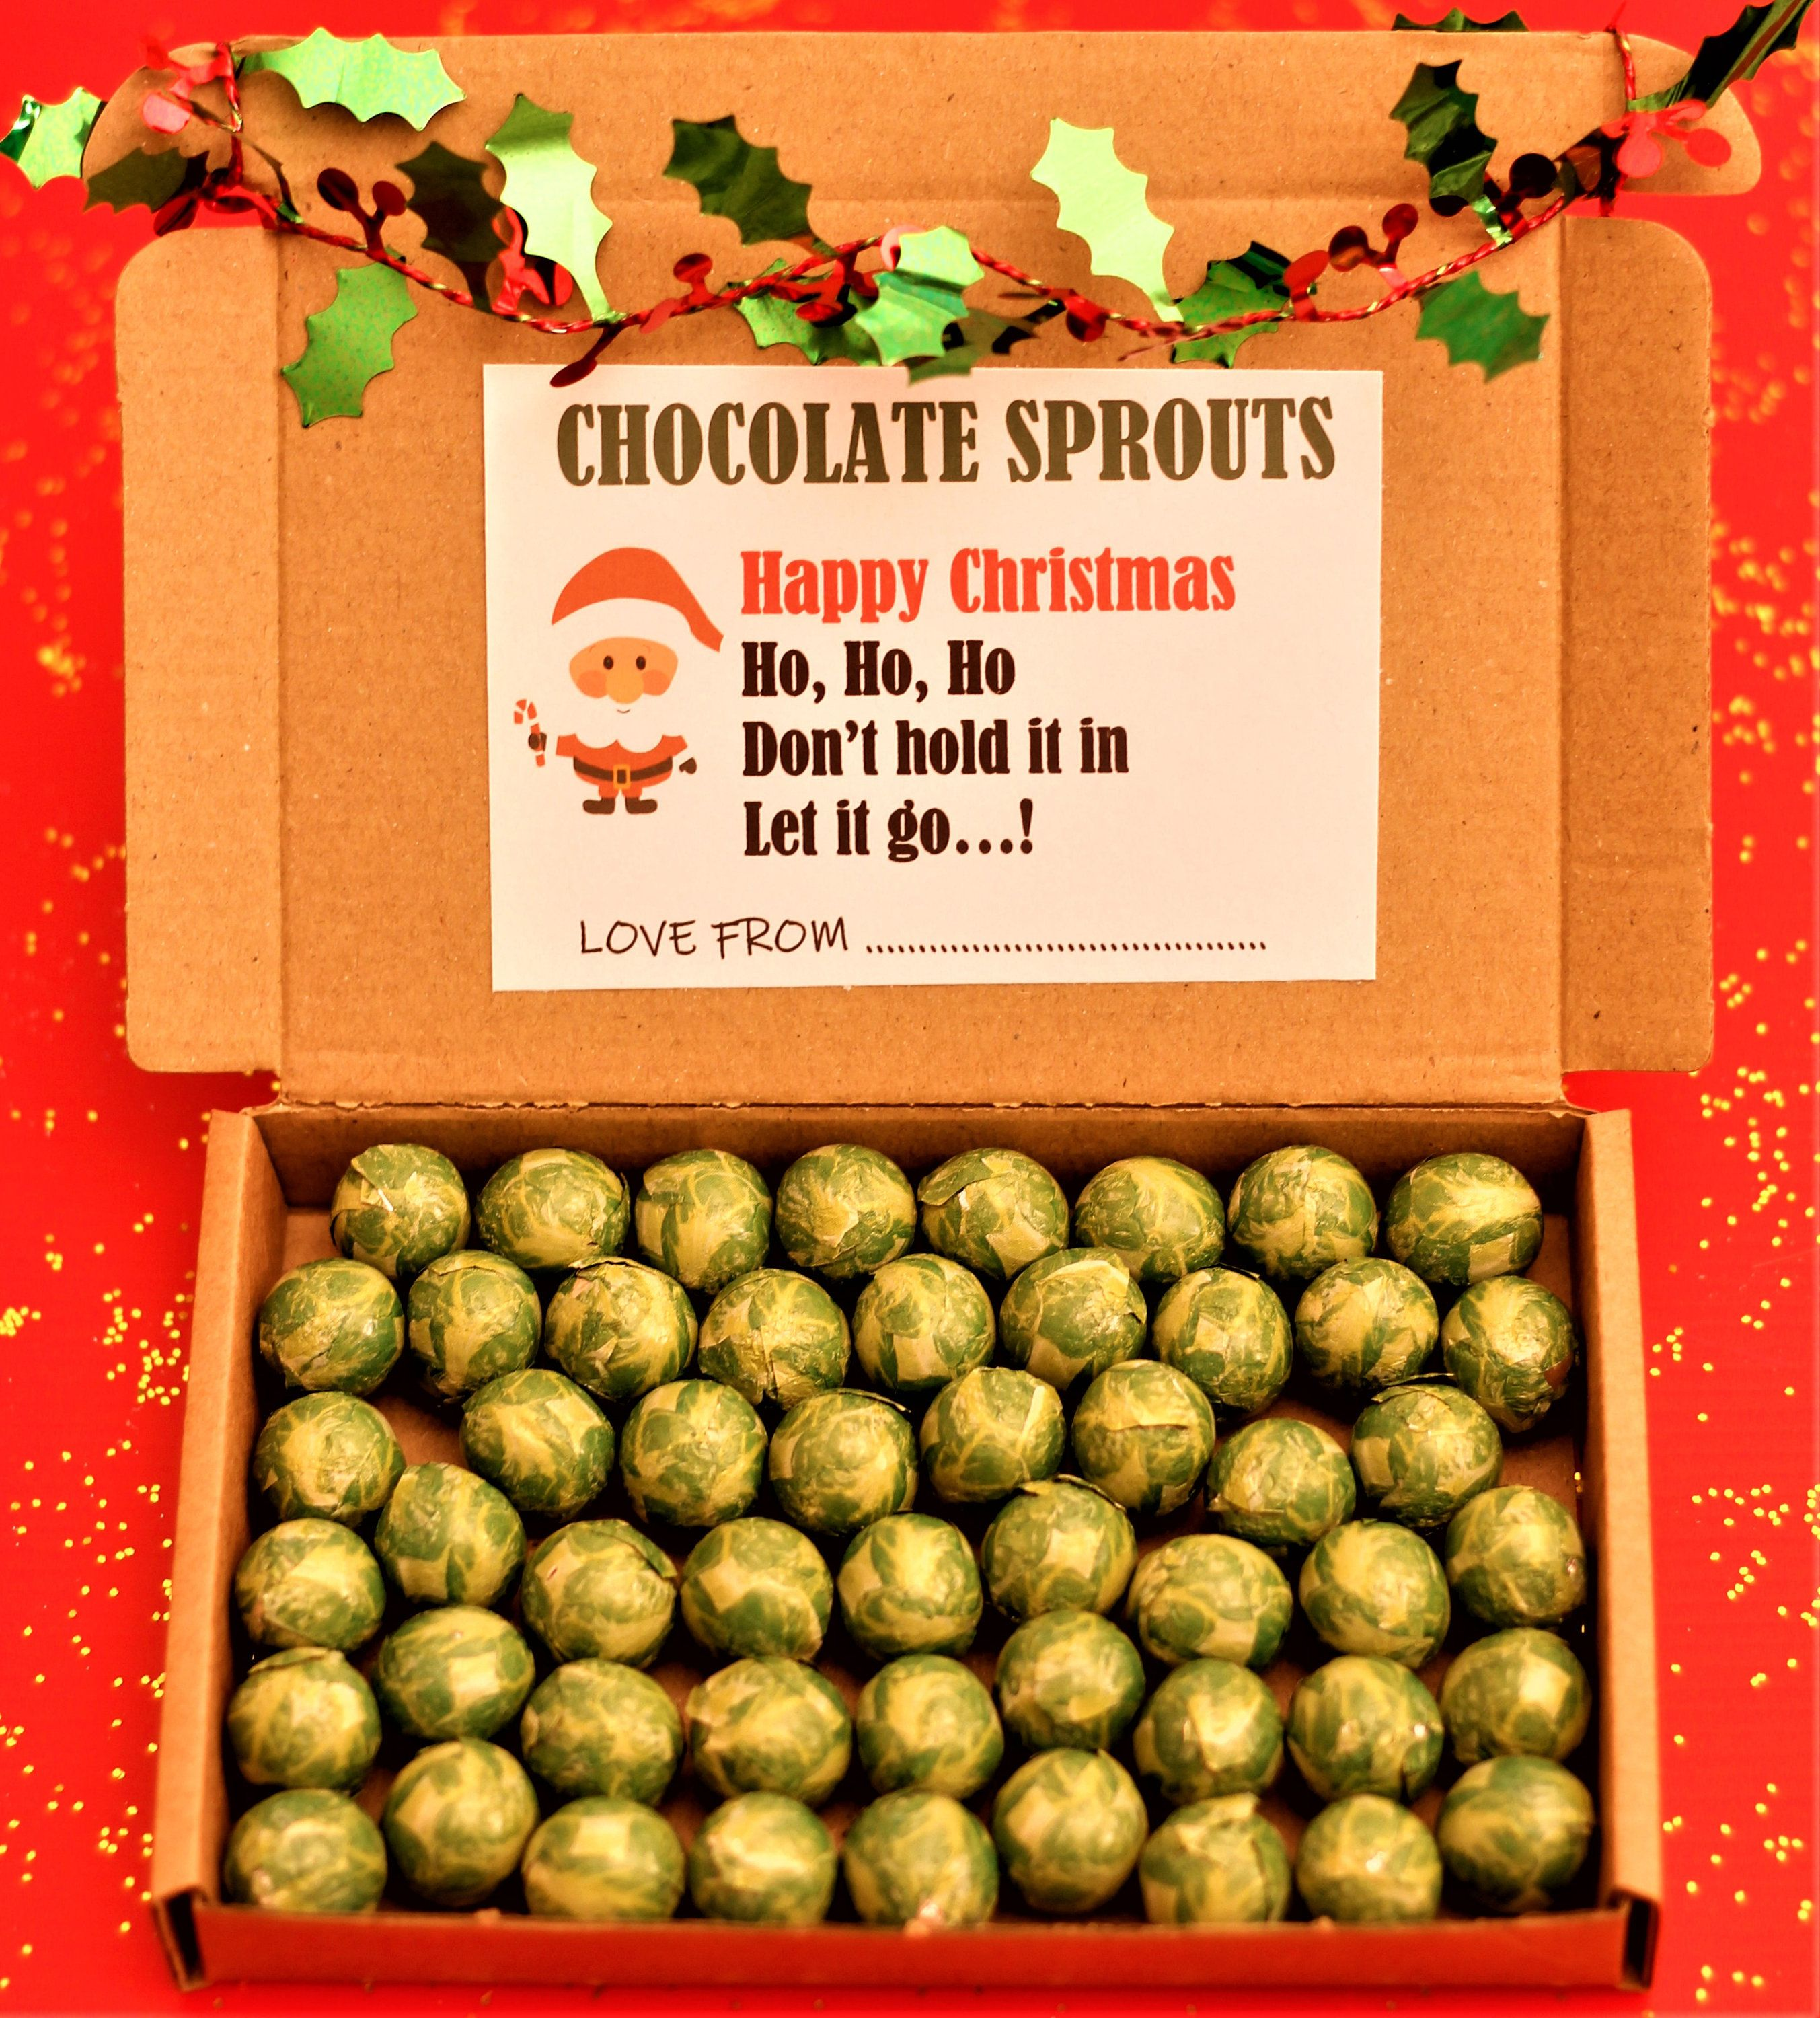 Sprouts Christmas Eve Hours 2020 New Chocolate Brussel Sprouts Christmas Eve Stocking Filler | Etsy